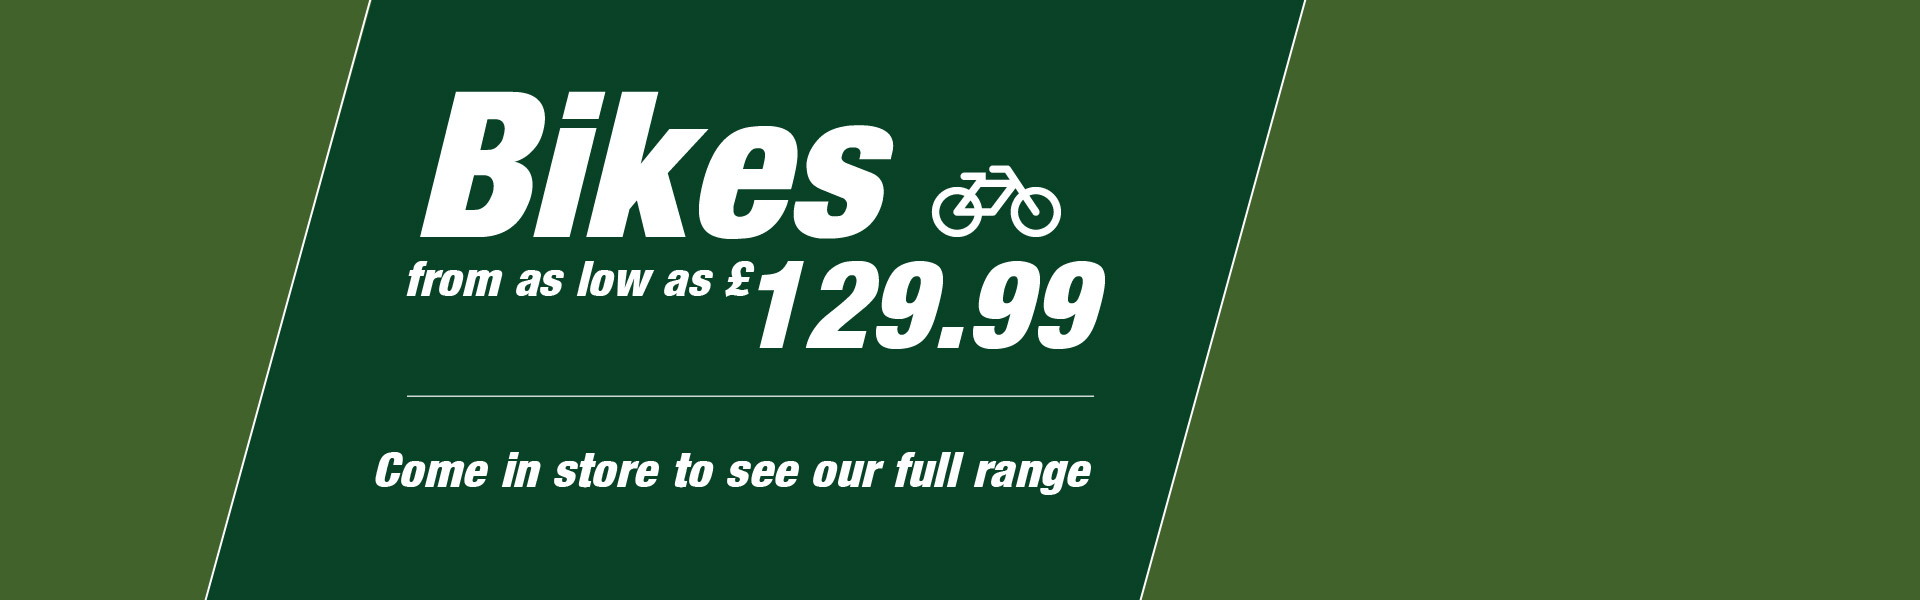 Bikes From £129.99